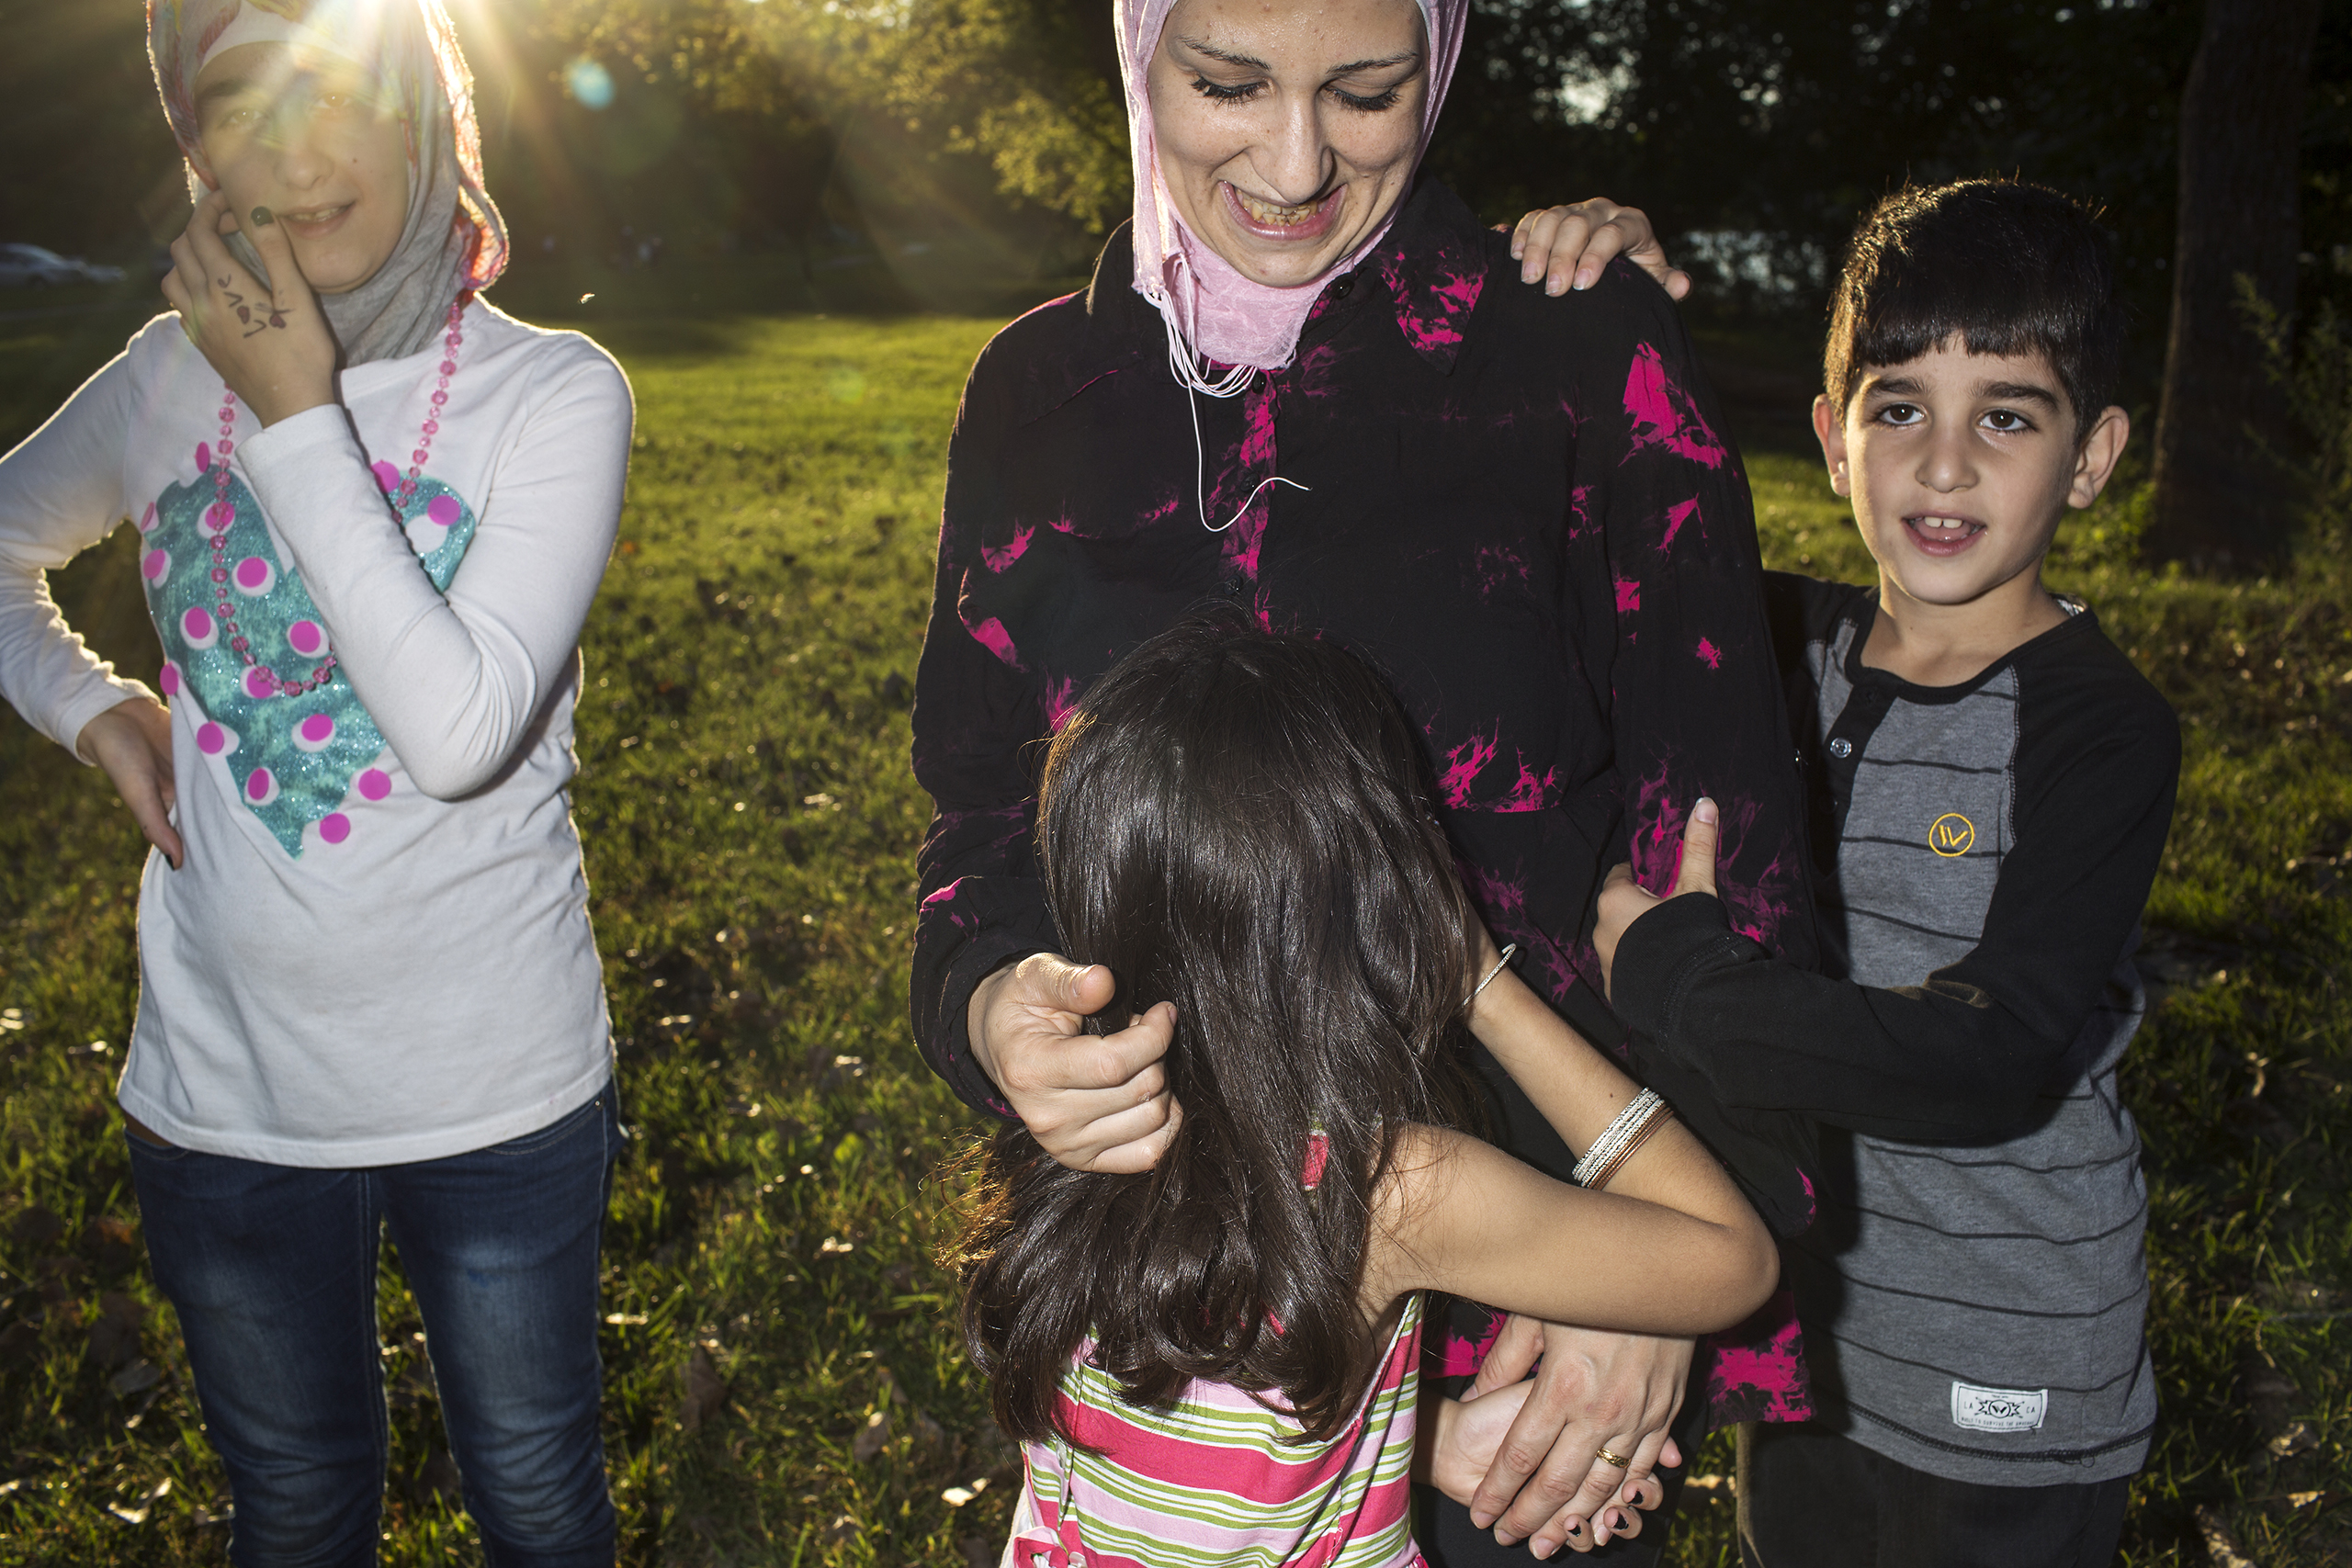 Ghazweh plays with her children Sedra, Hala and Mutaz at a park in Des Moines, Iowa.